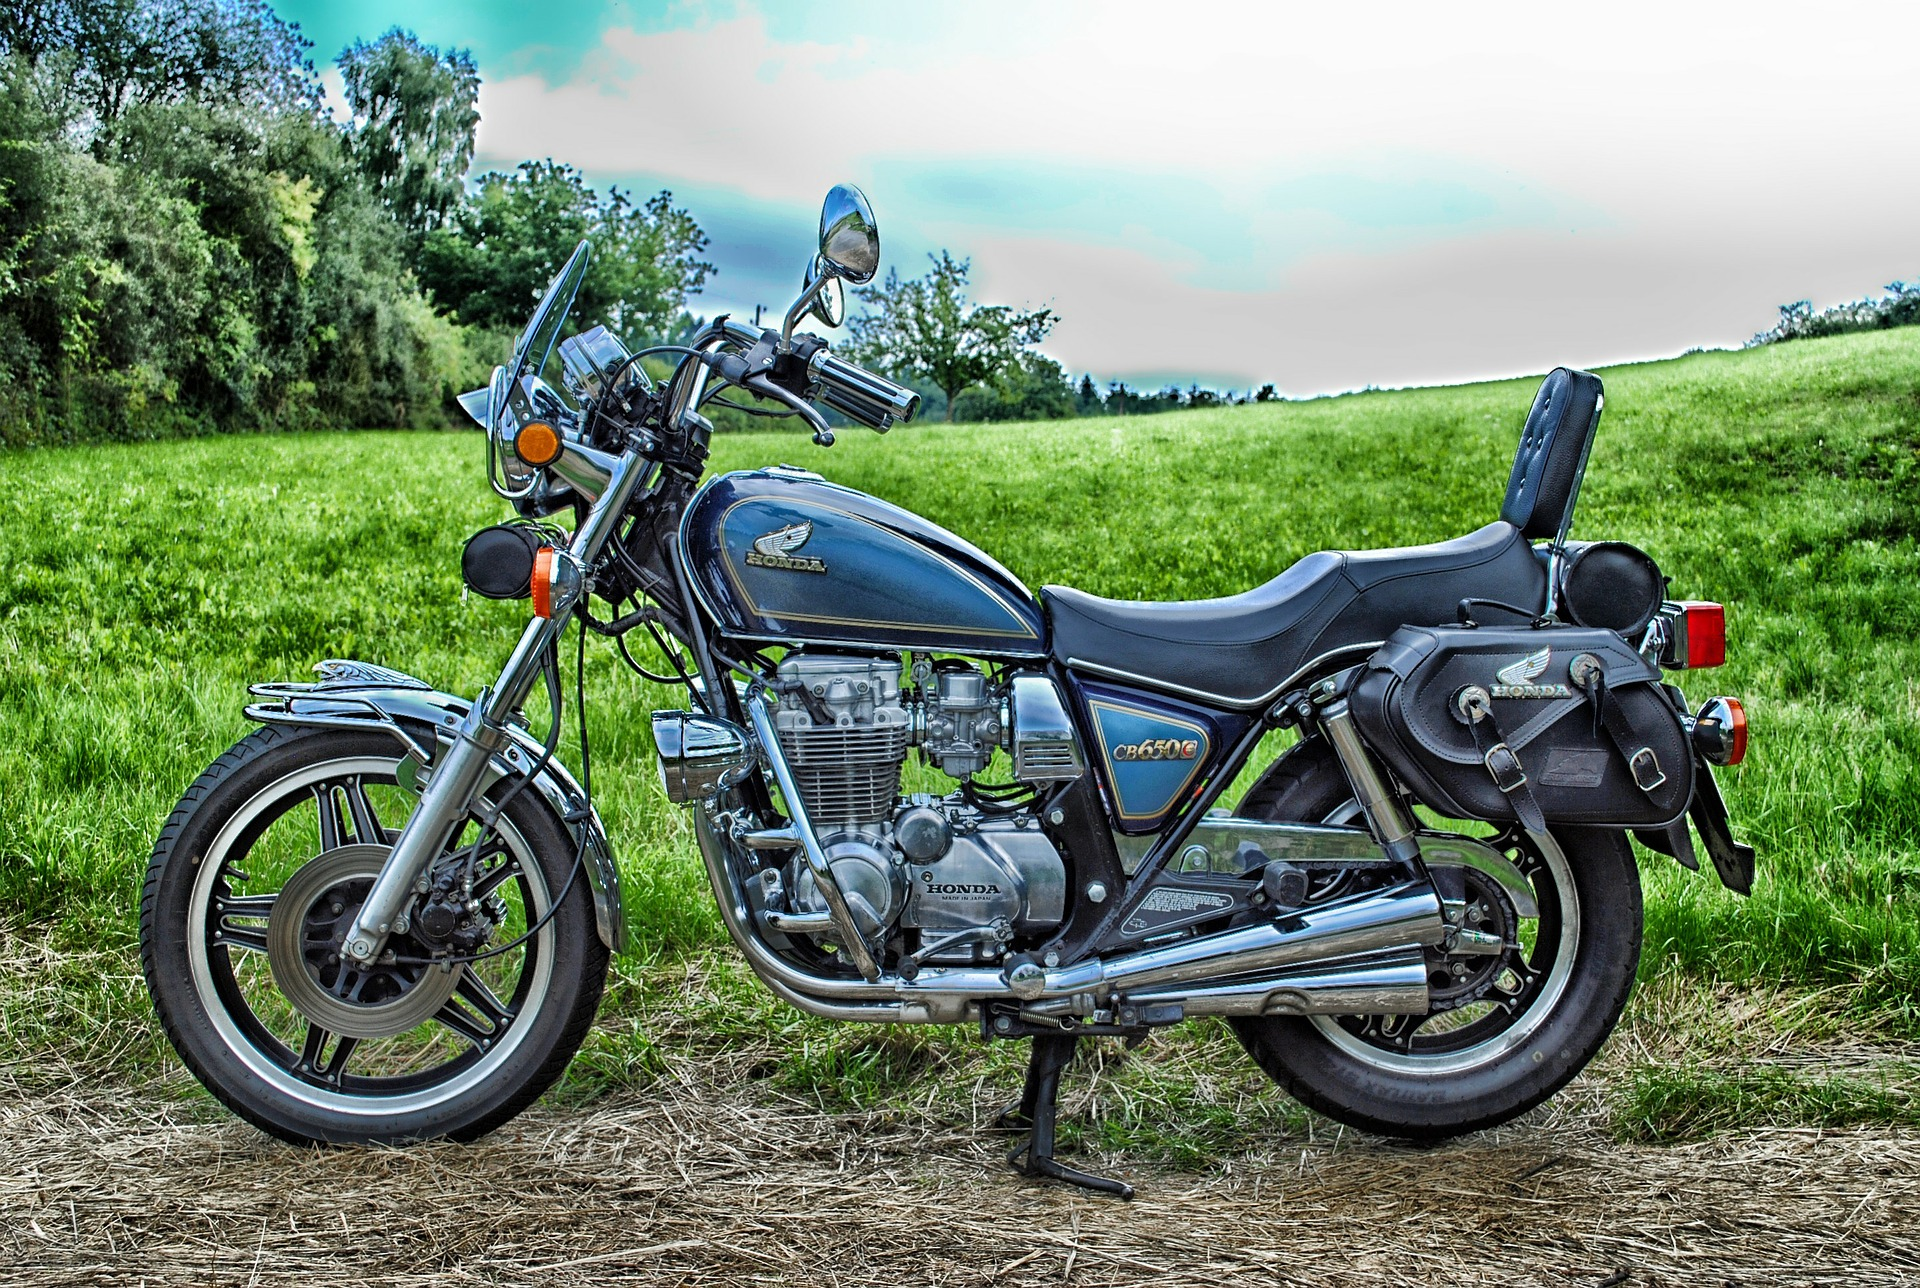 Motorcycle Storage | How to Store Your Motorcycle in Self Storage